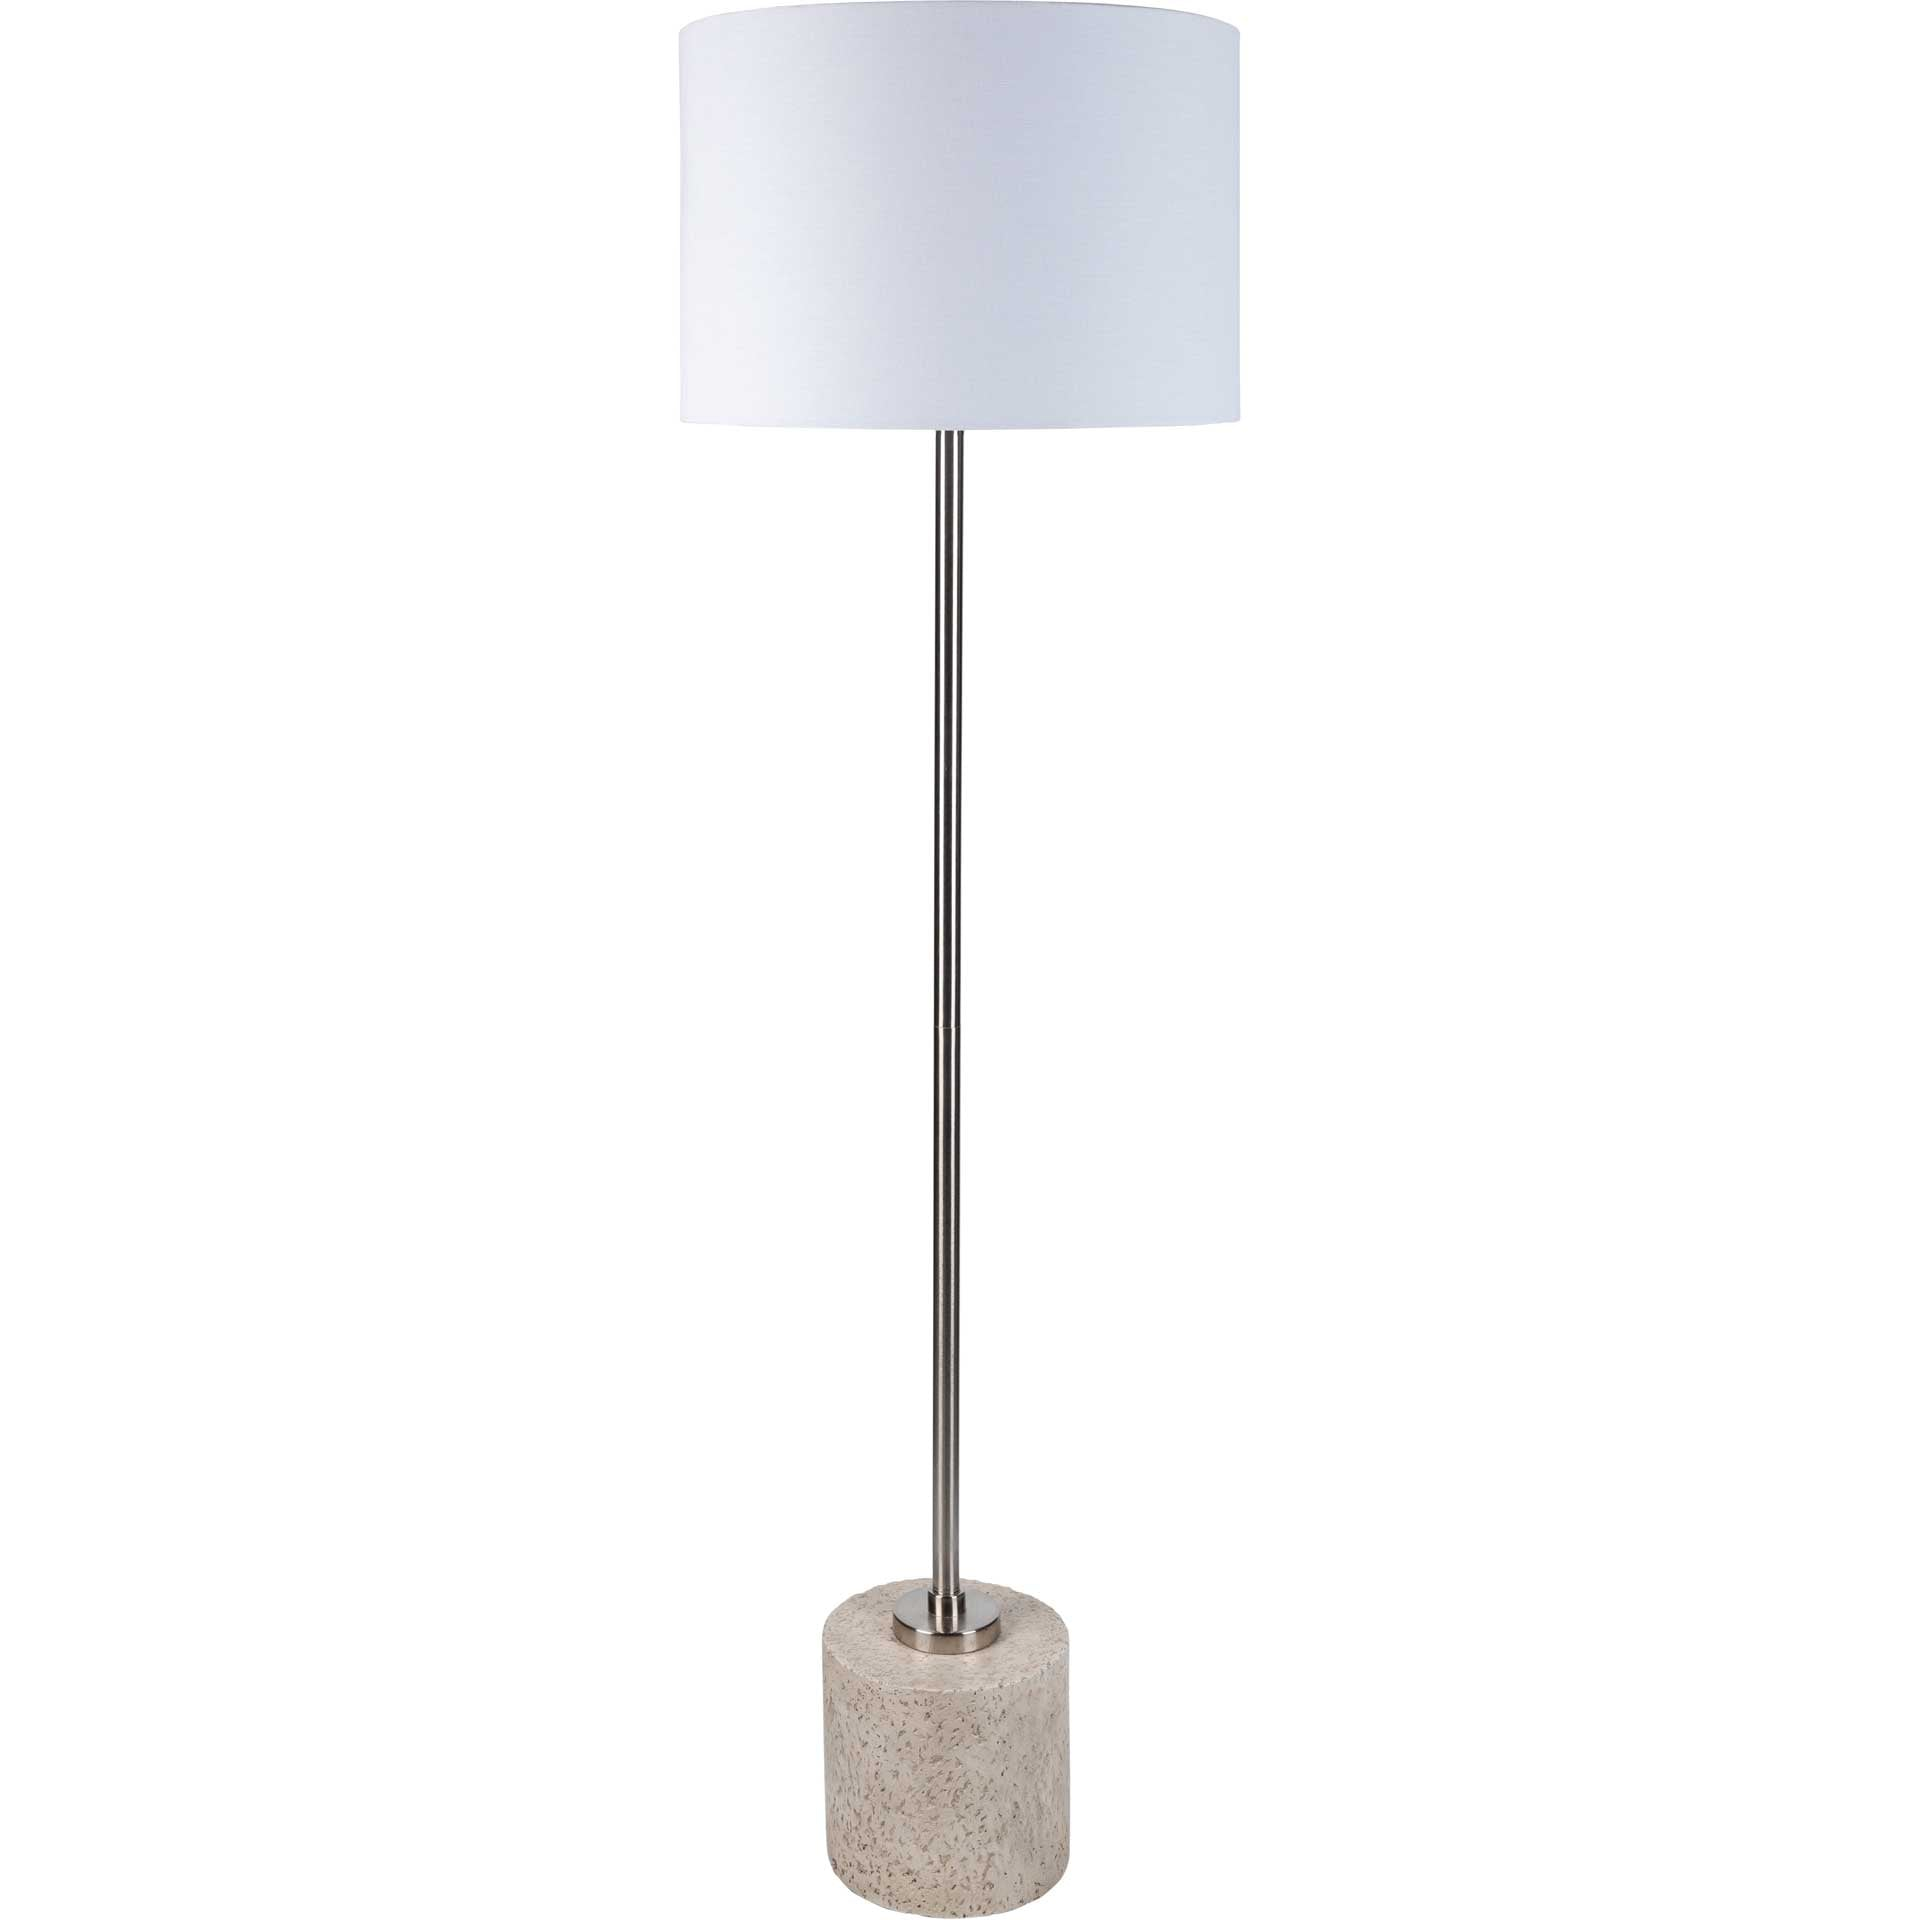 Leah Floor Lamp White/Silver